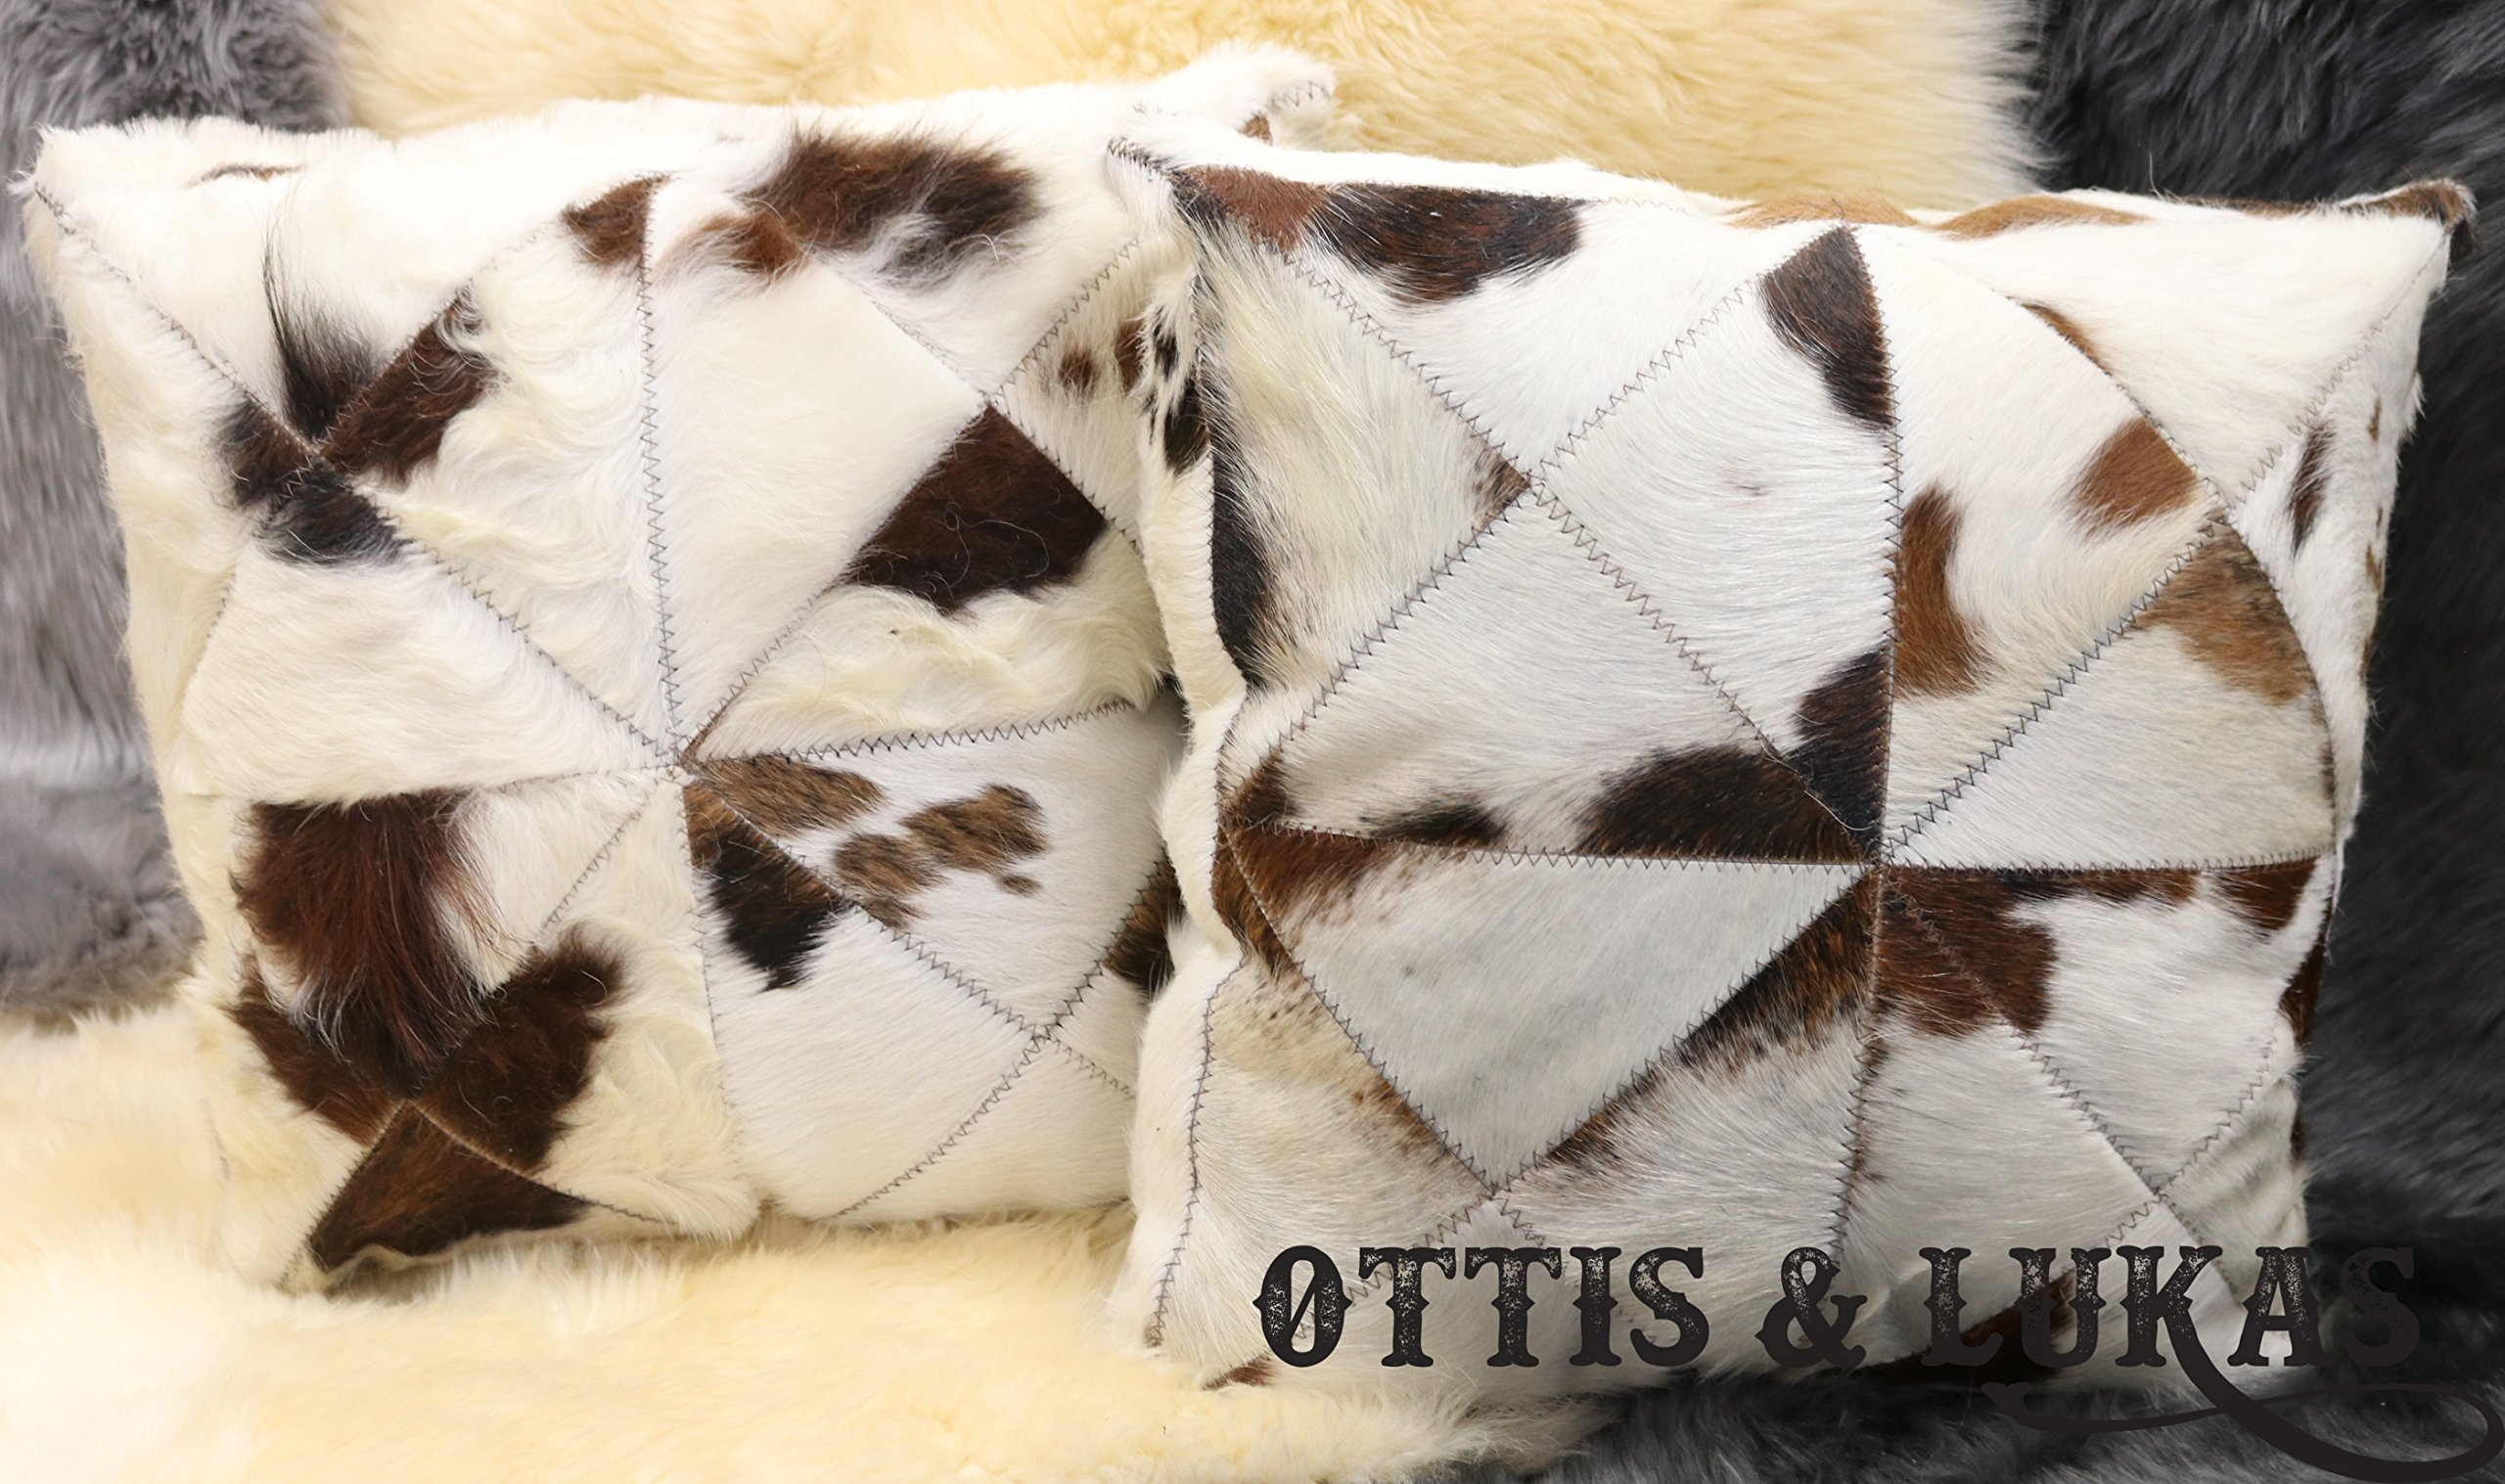 Set of two Cowhide Throw Pillows White/Brown Animal Skin - Polyester Fiberfill Include Polyester Fiberfill